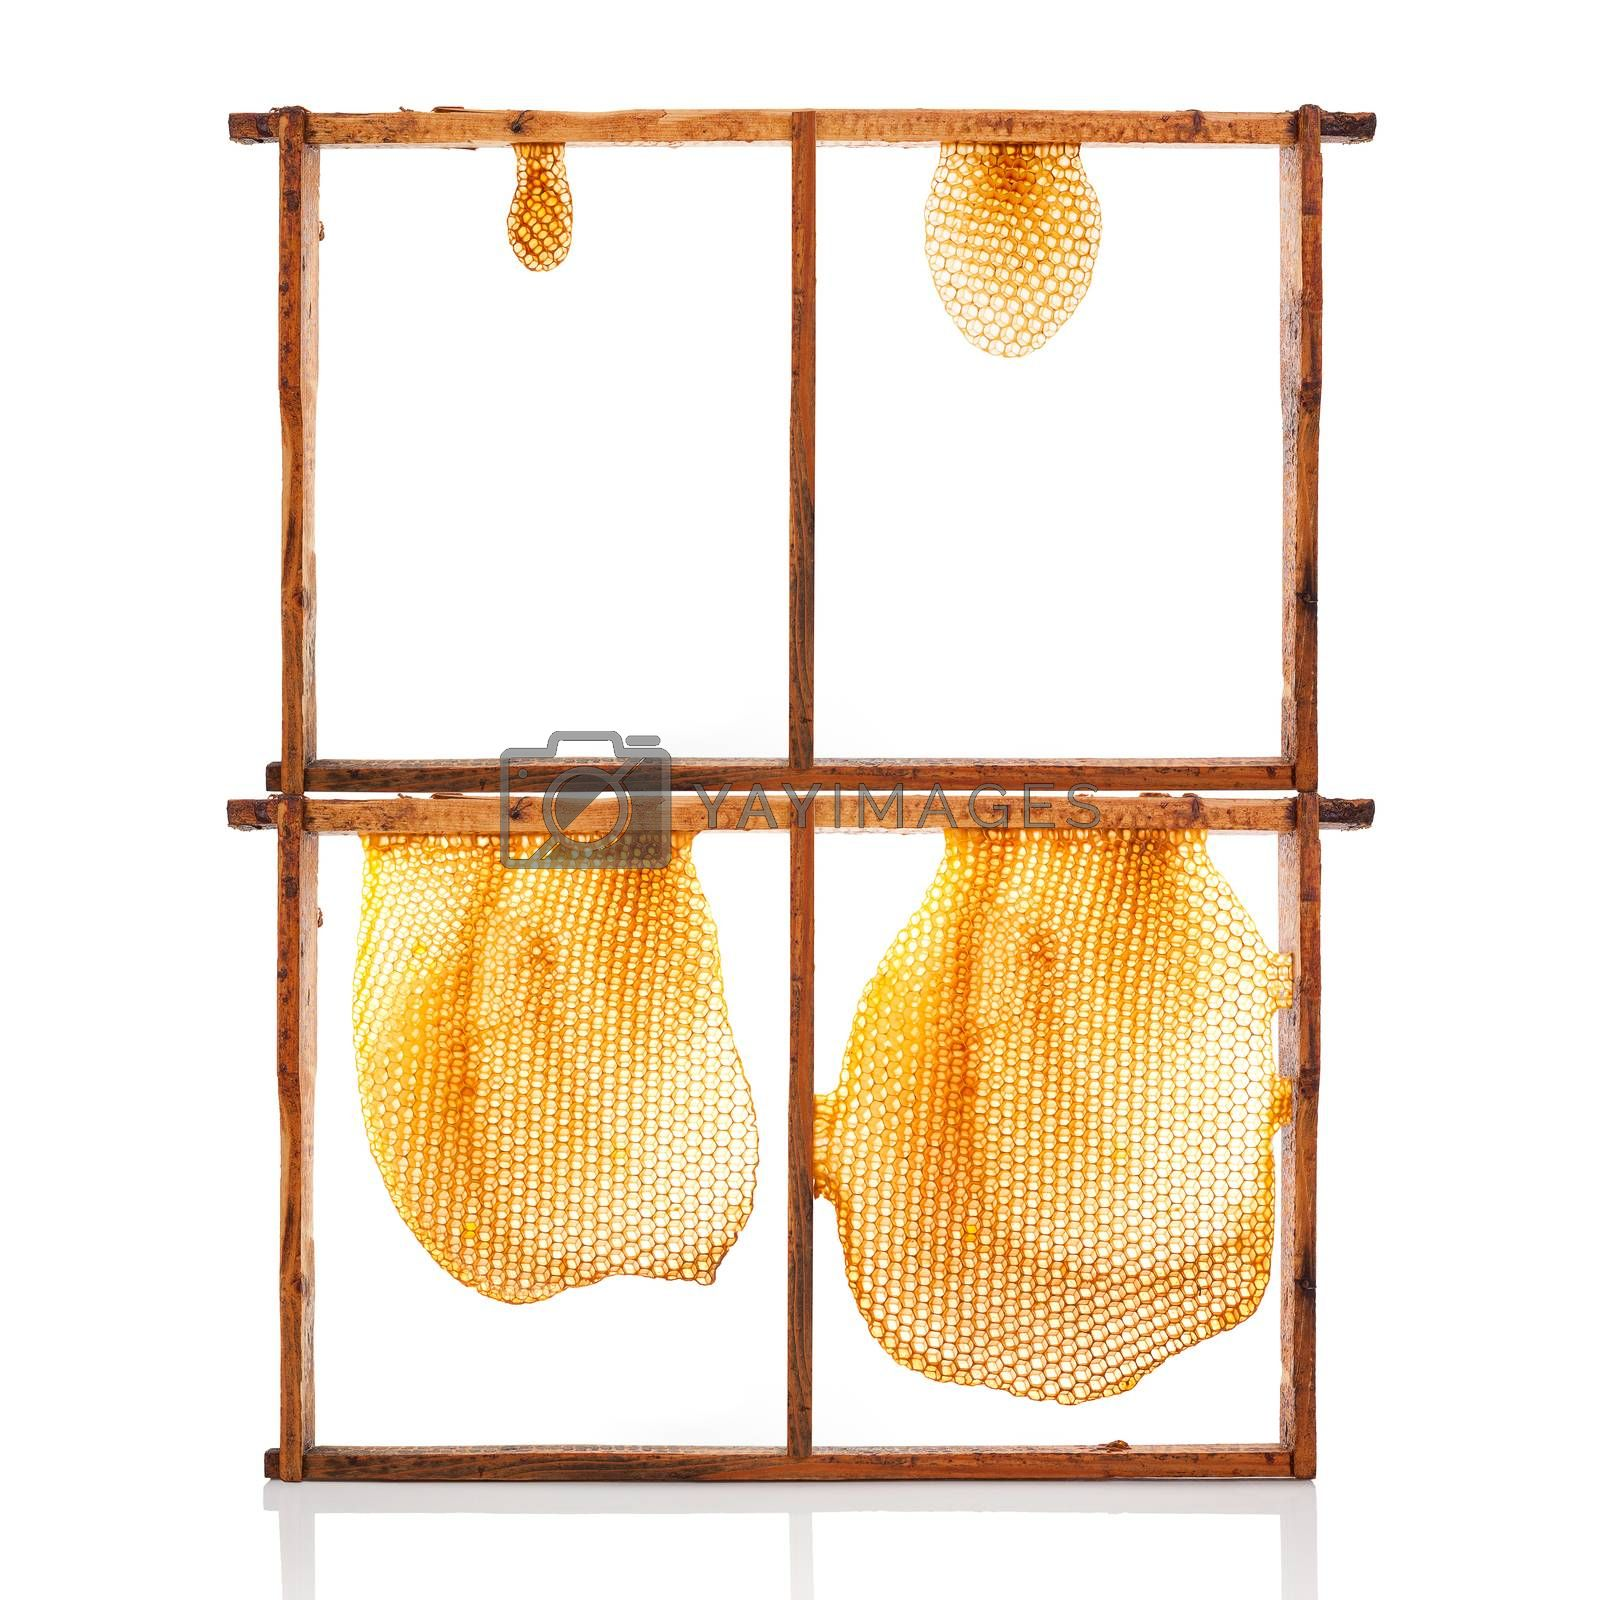 Organic honey in honeycomb over white background. Honey making and Beekeeping.